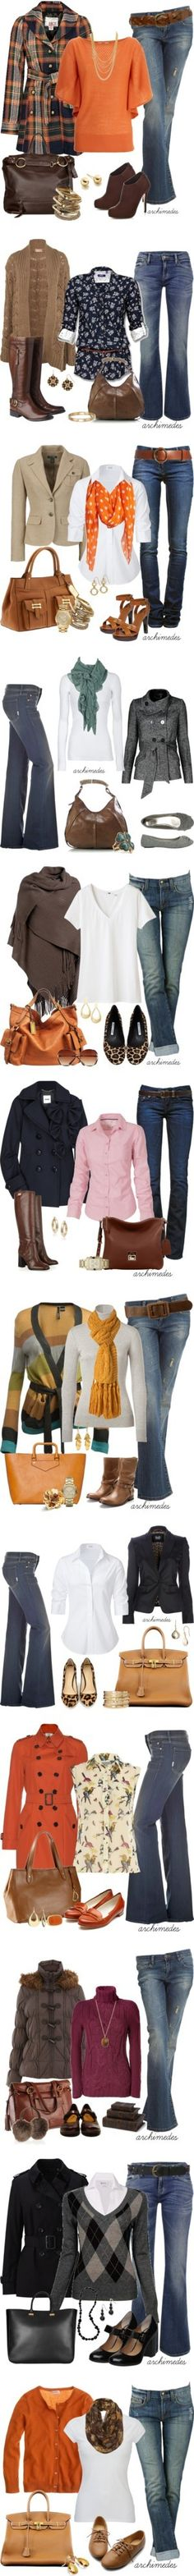 Fall outfits ♥